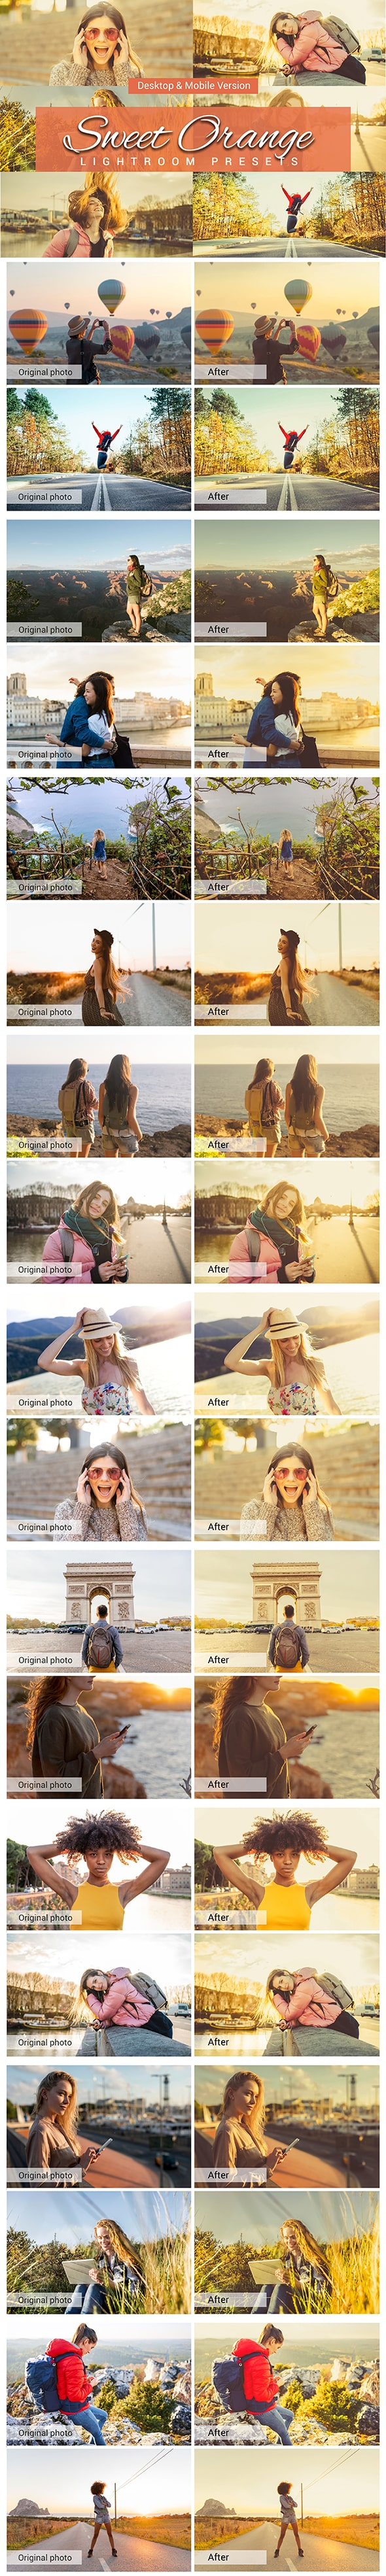 7500 New Complete Bundle Presets Lightroom, Photoshop Actions and Cinematic LUTs - Sweet Orange Preview min